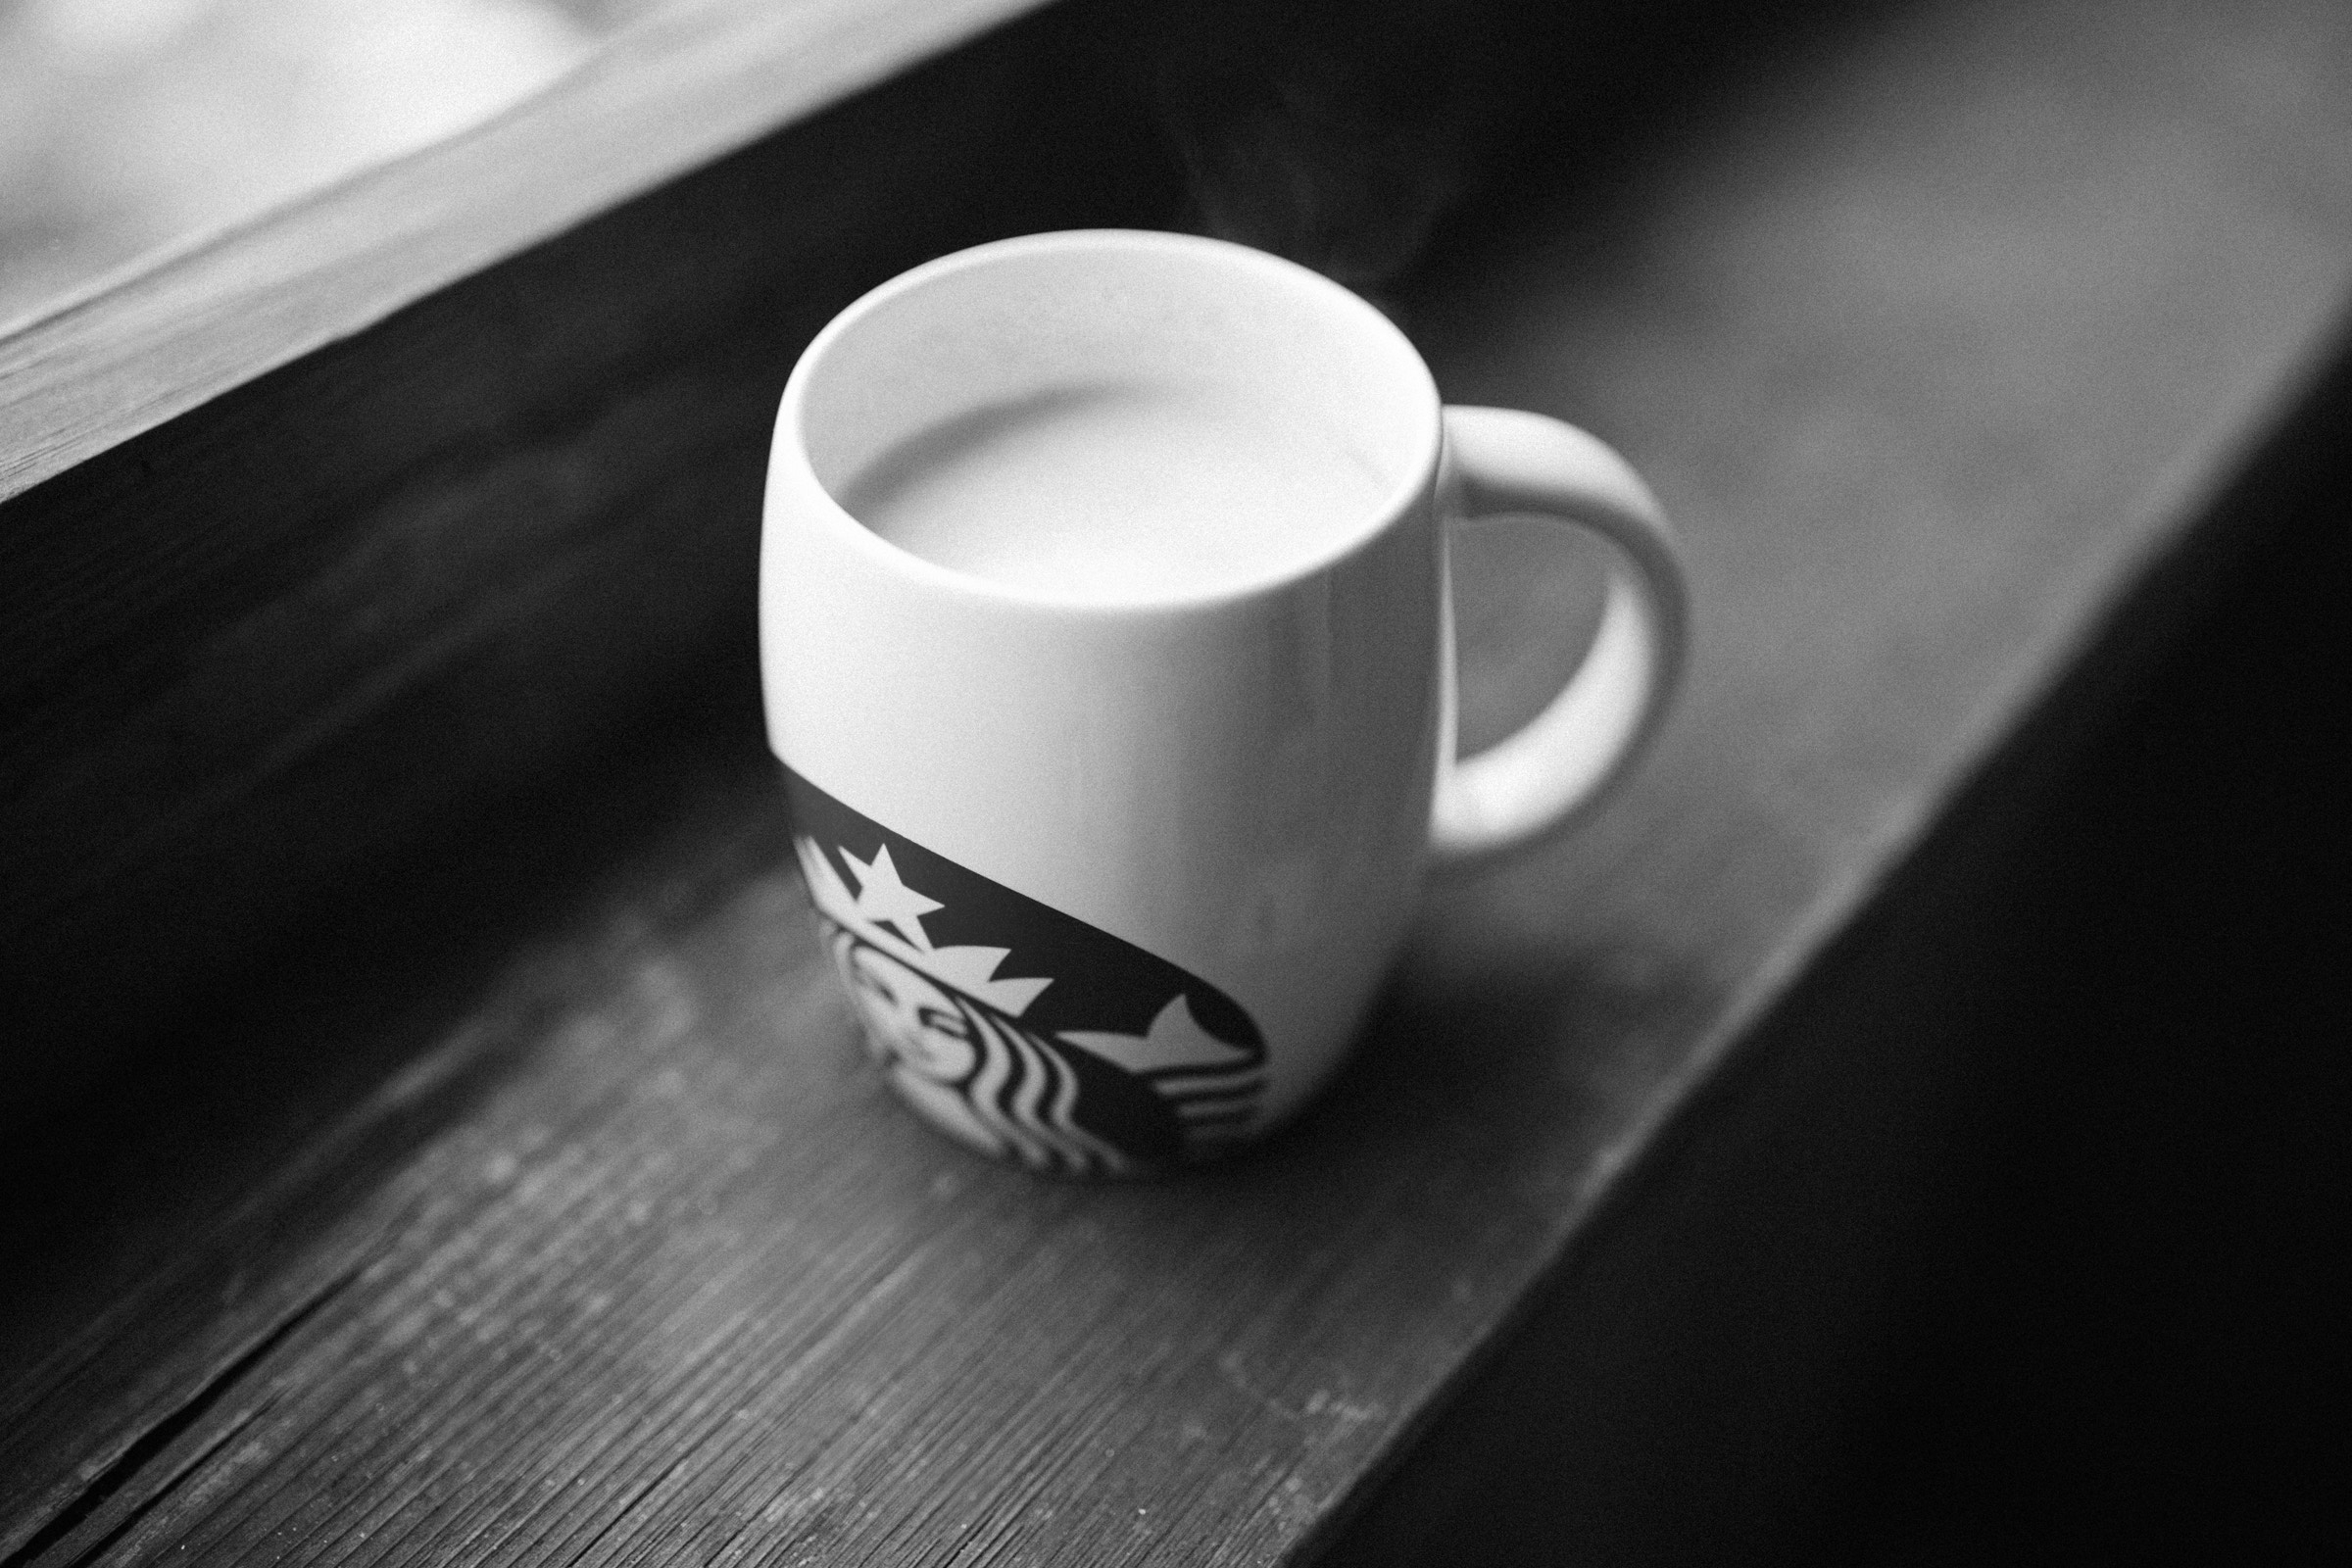 A mug of coffee on a wooden windowsill, with the Starbucks logo